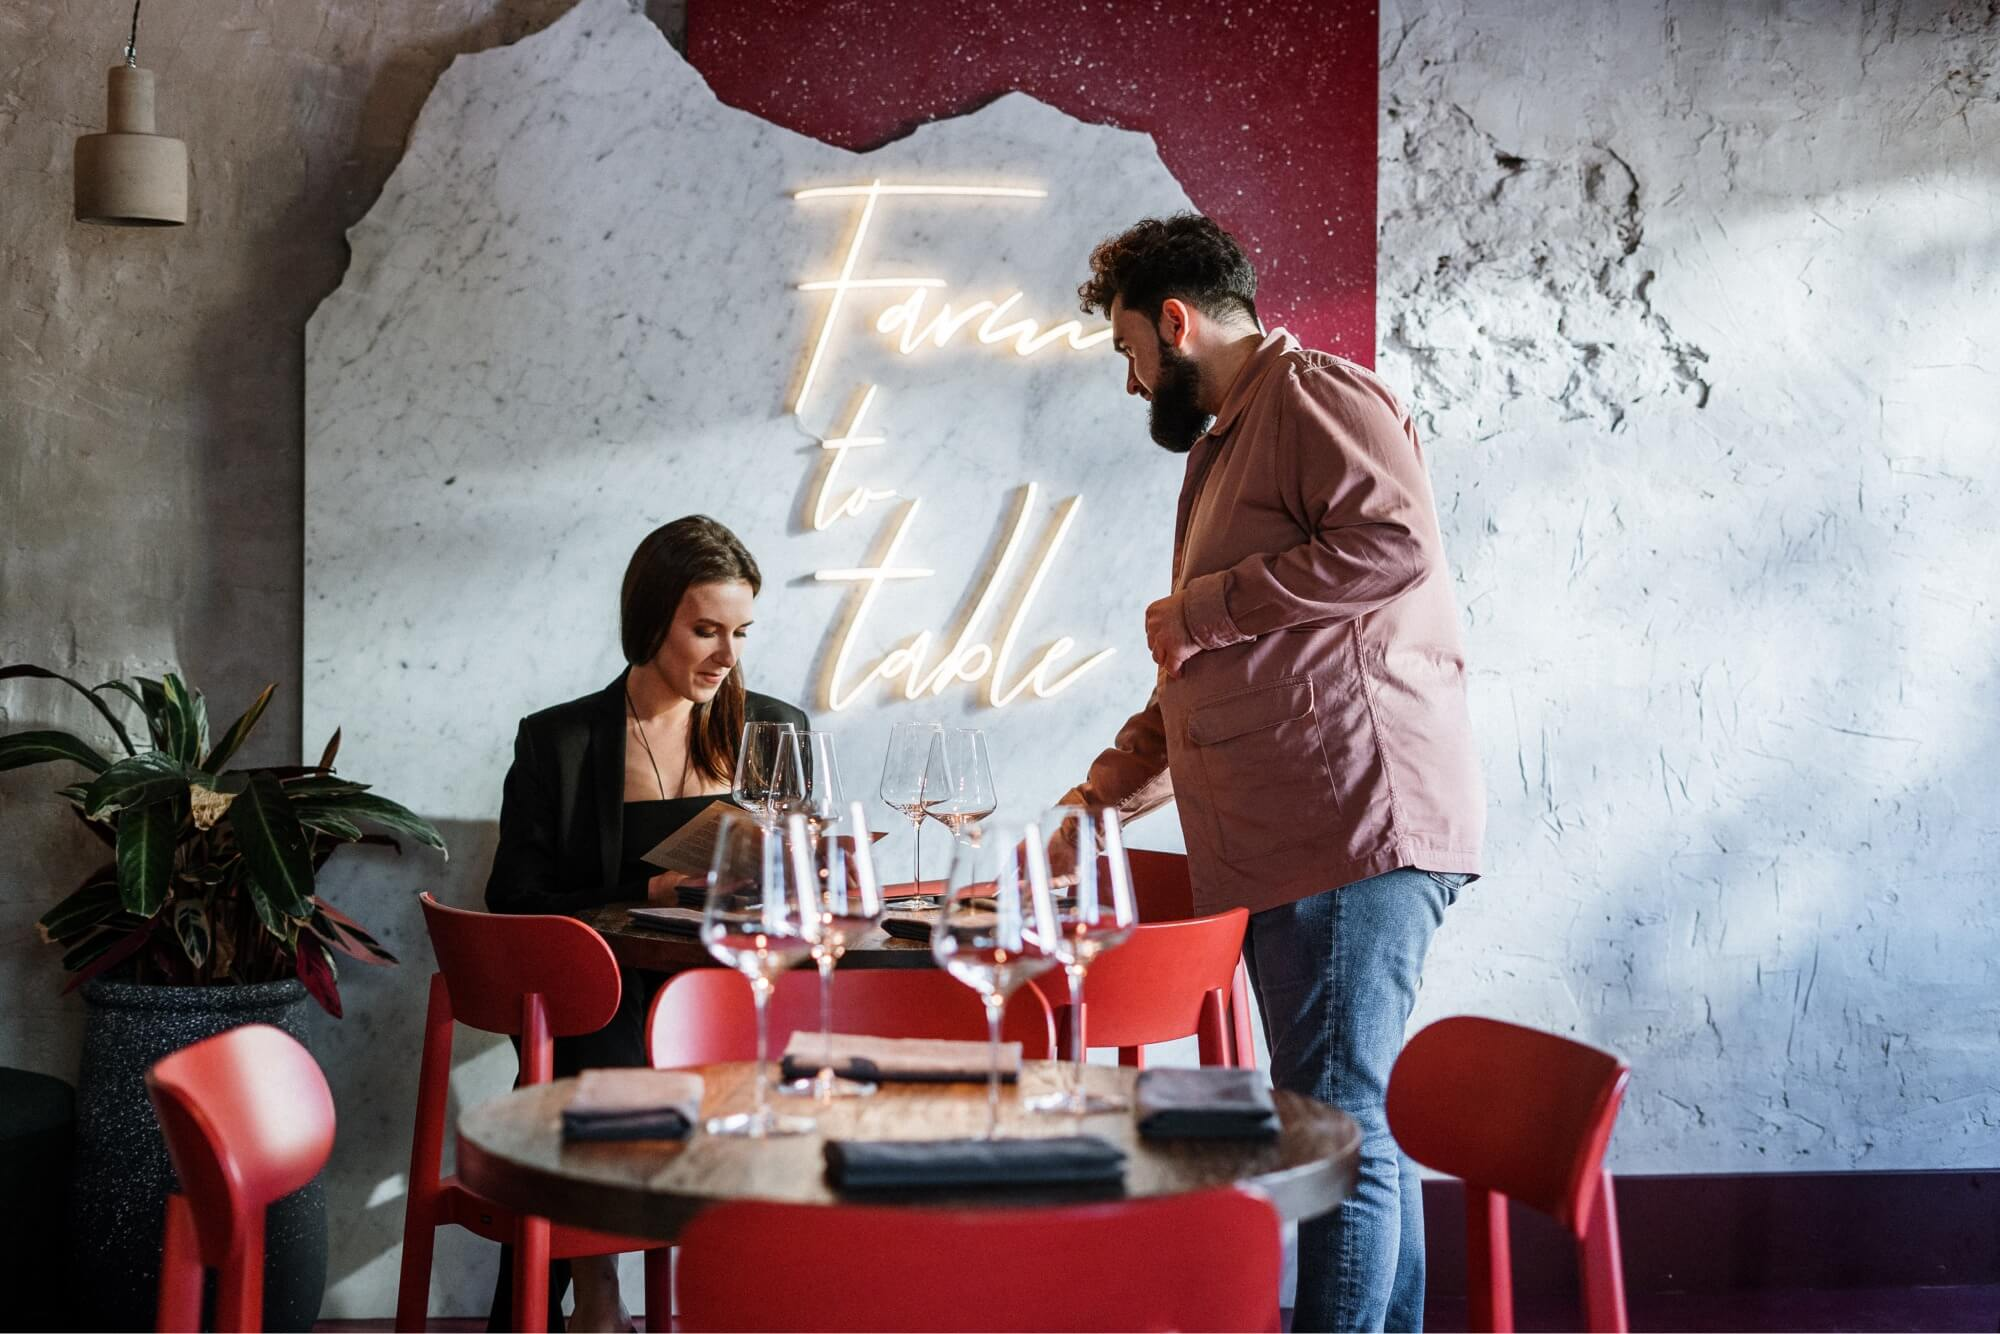 After following good restaurant design tips, this restaurant owner is speaking with a customer at his farm-to-table themed restaurant that makes use of the color red in the chairs and wall backsplash.